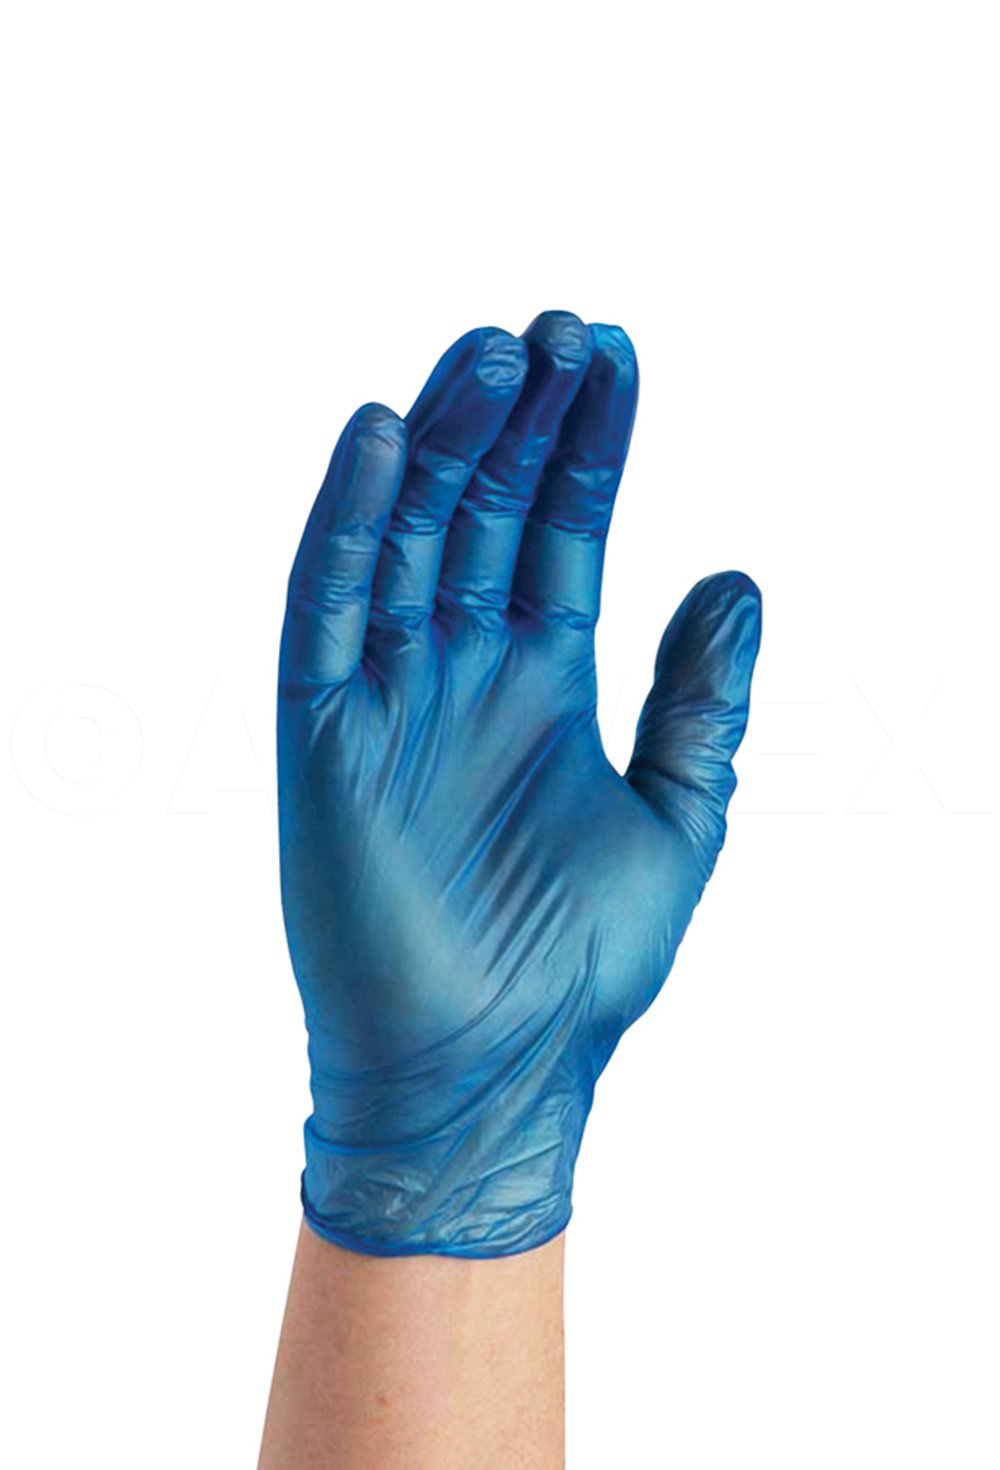 AMMEX - IVBPF46100 - Vinyl Gloves - GlovePlus - Disposable, Powder Free, Non-Sterile, 4 mil, Large, Blue (Case of 1000) by Ammex (Image #2)